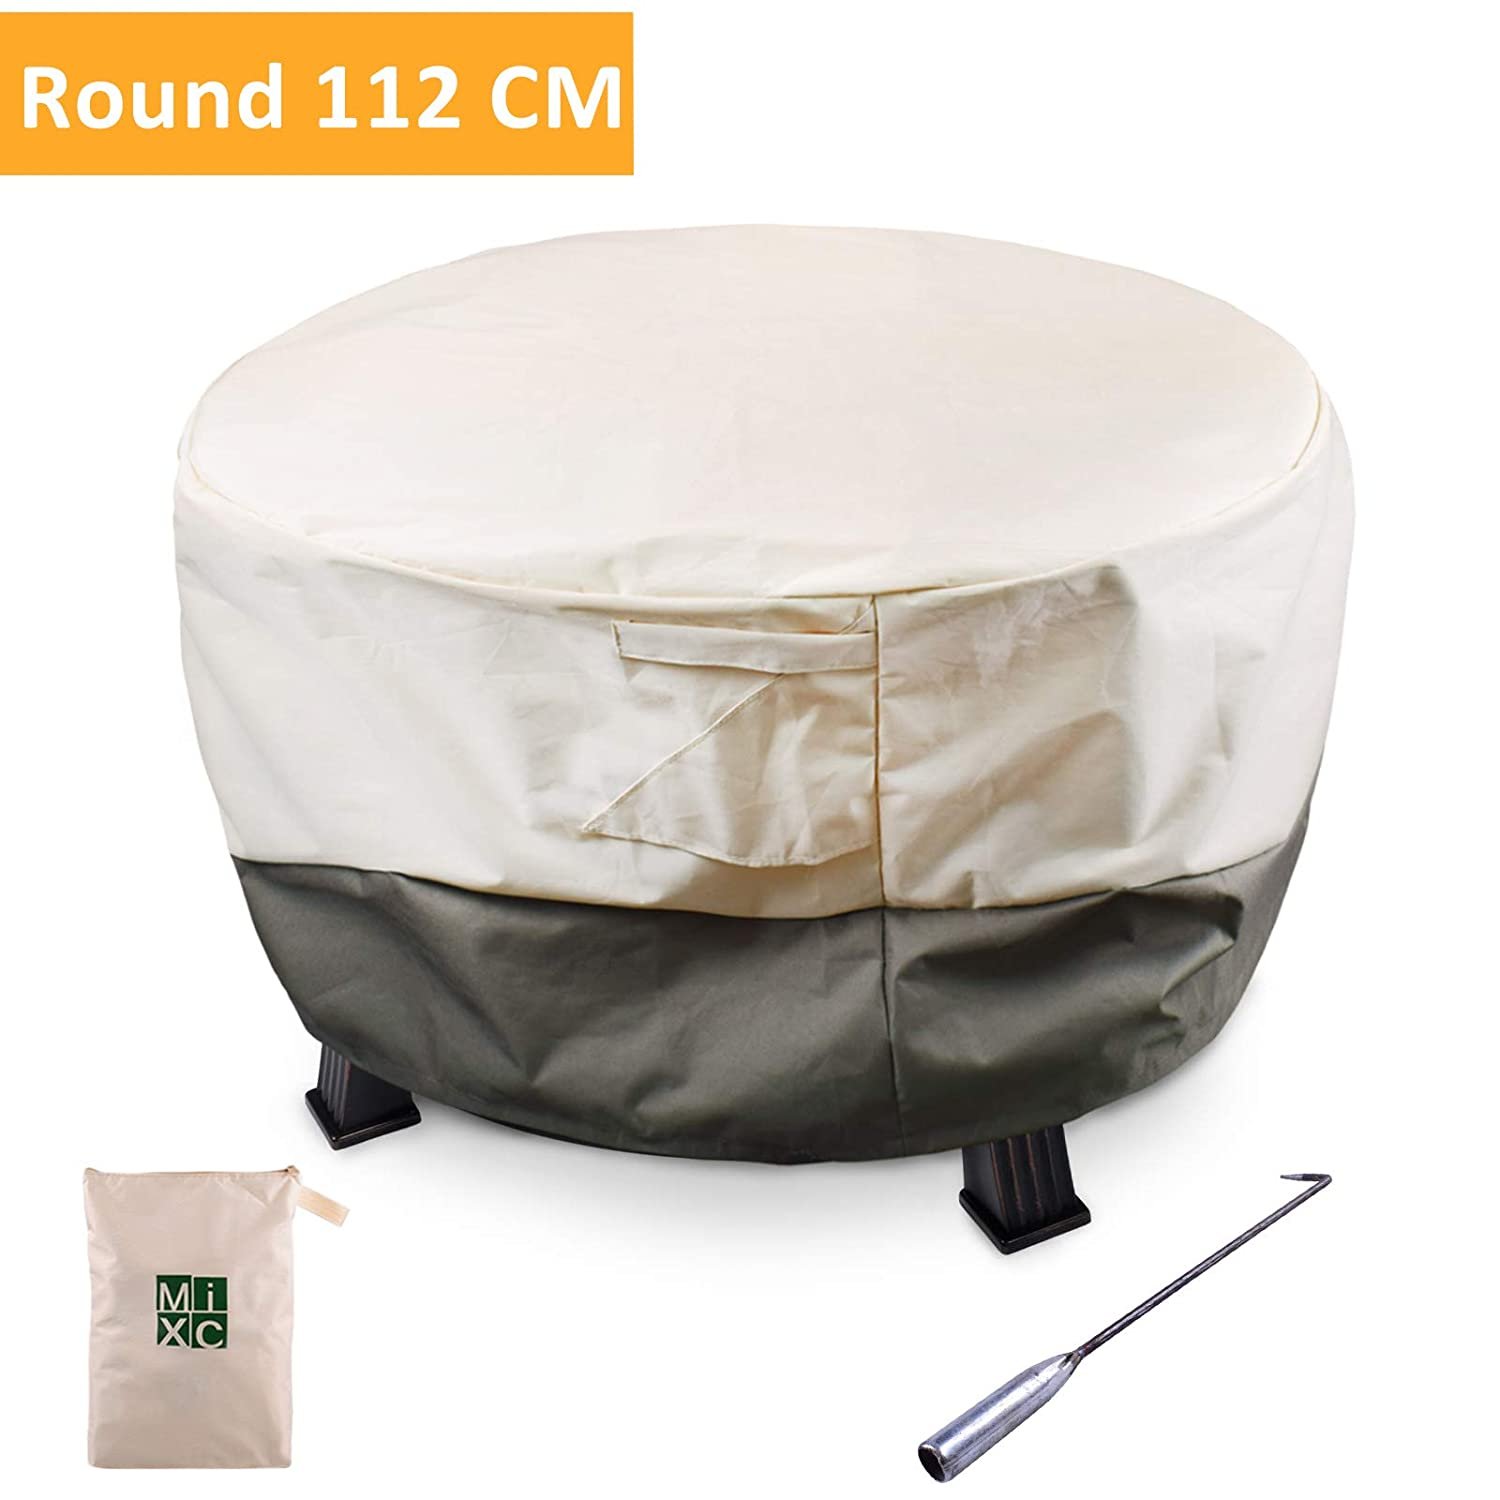 Deluxe Oxford Fire Pit Cover, MIXC Heavy Duty Waterproof Round Fire Pit Cover, Patio Outdoor Fire Bowl Cover, Air Vents and Elastic Hem, UV Protected & Weather Resistant Protective For Garden BBQs Patio Sets (112 cm)